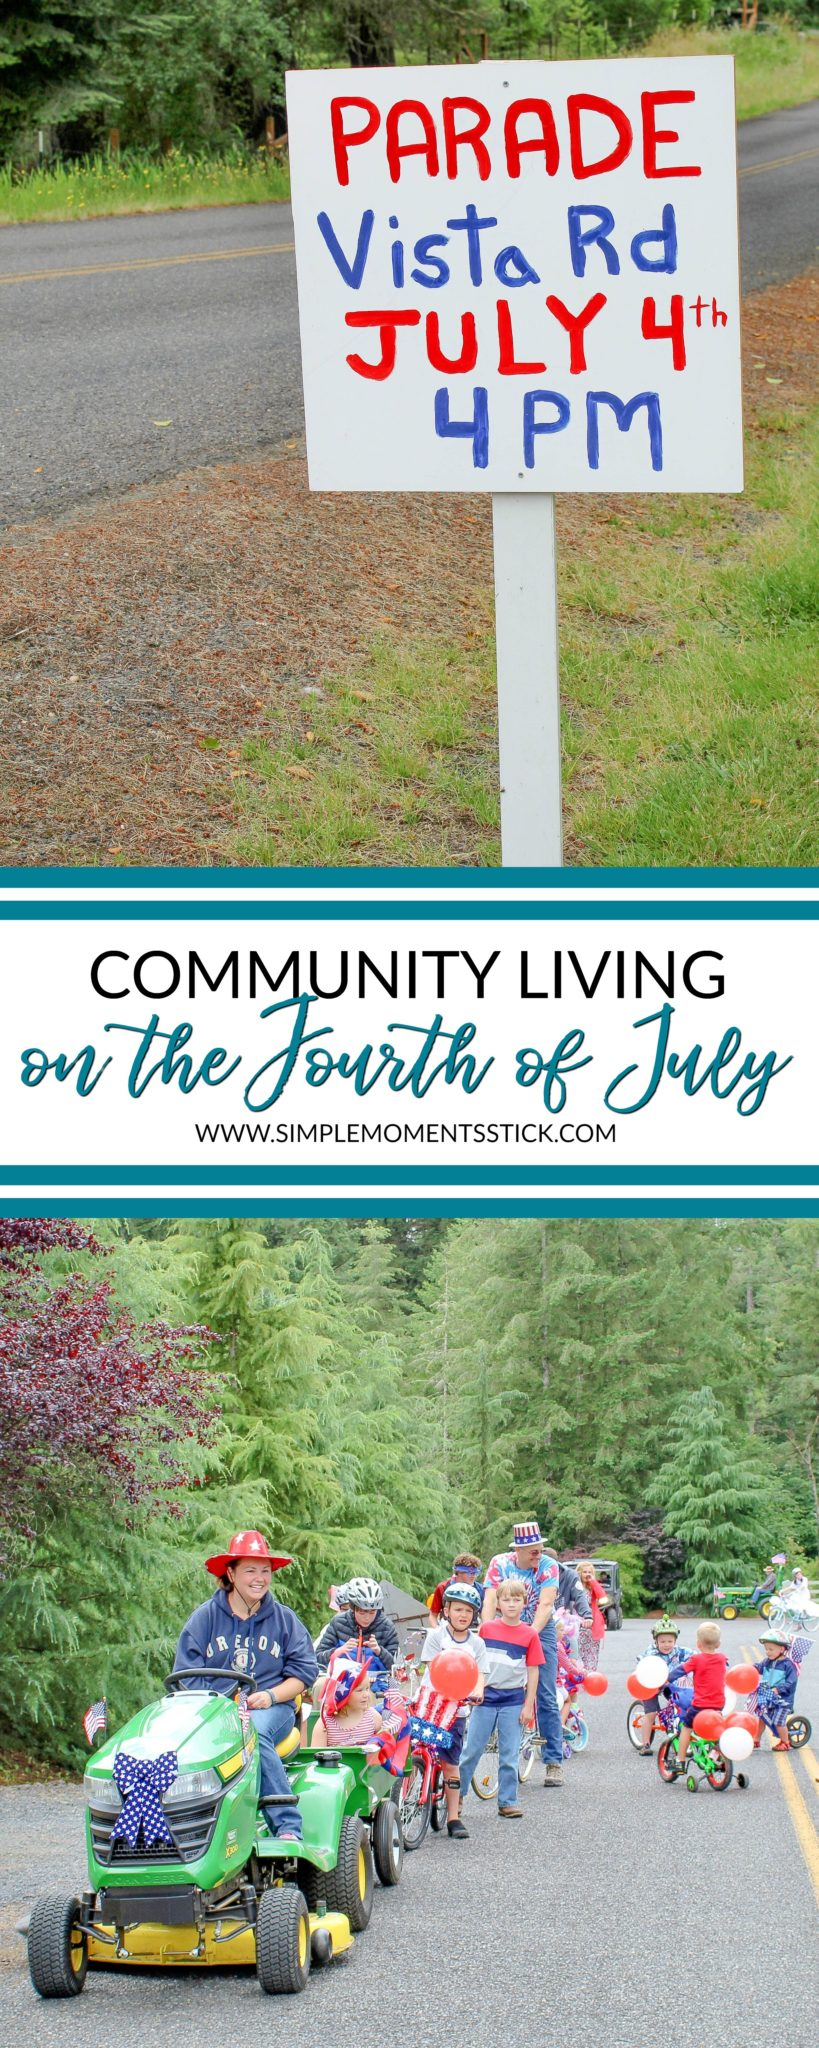 Community living is key for a successful, happy life! #4thofJuly #Julyfourth #Independenceday #fourthofjuly